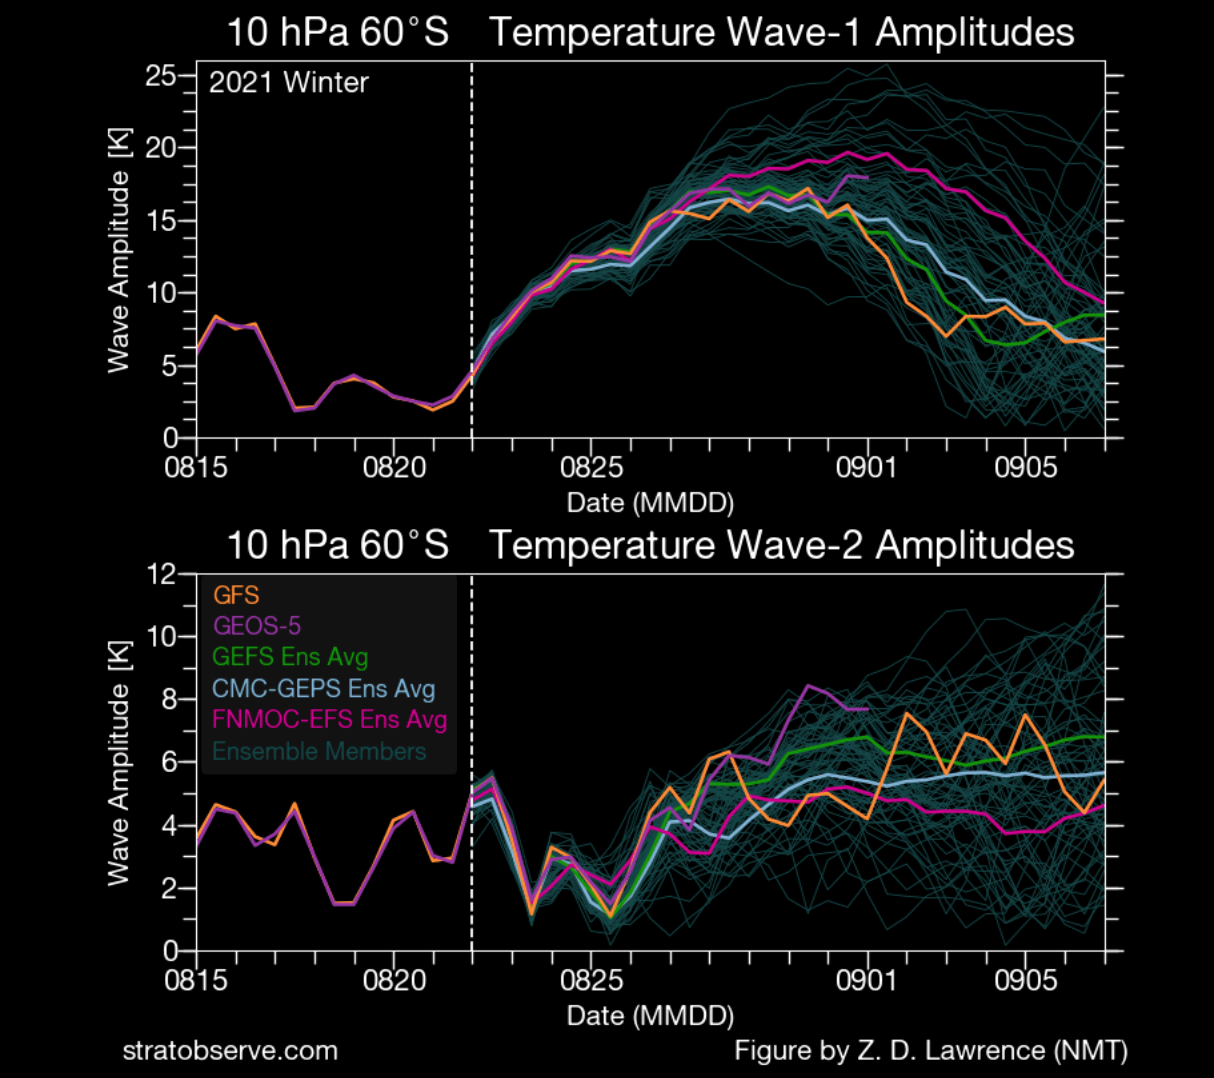 winter-south-pole-stratosphere-warming-temperature-wave-forecast